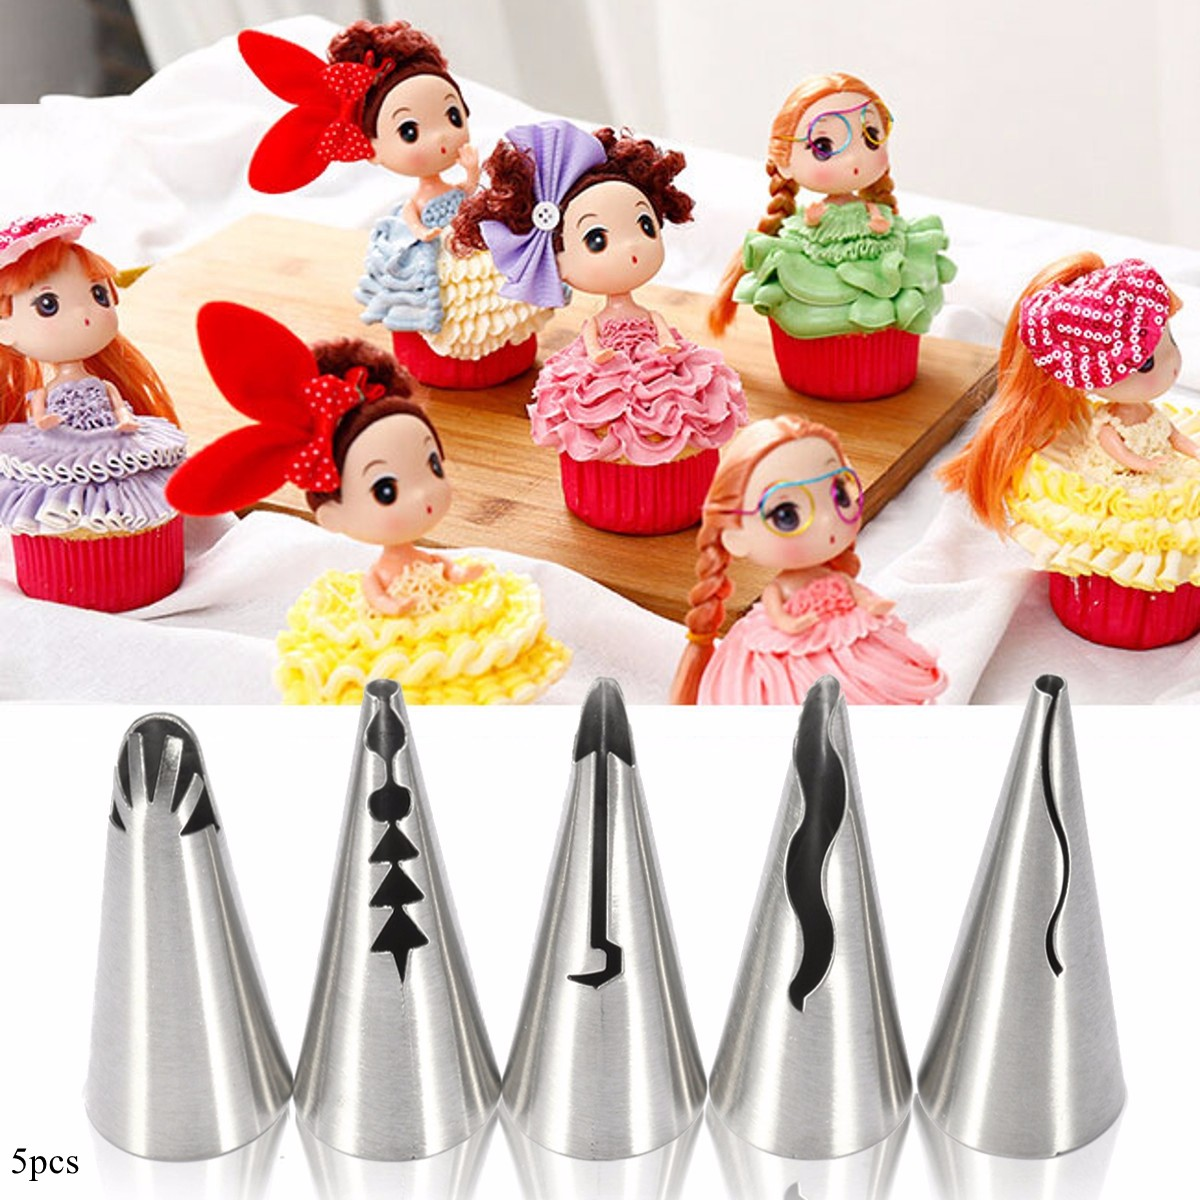 Cake Decorating Tips And Tricks : 5pcs Russian Skirt Icing Piping Nozzles Tips Flower Cake Decorating Baking Tools Lazada Malaysia